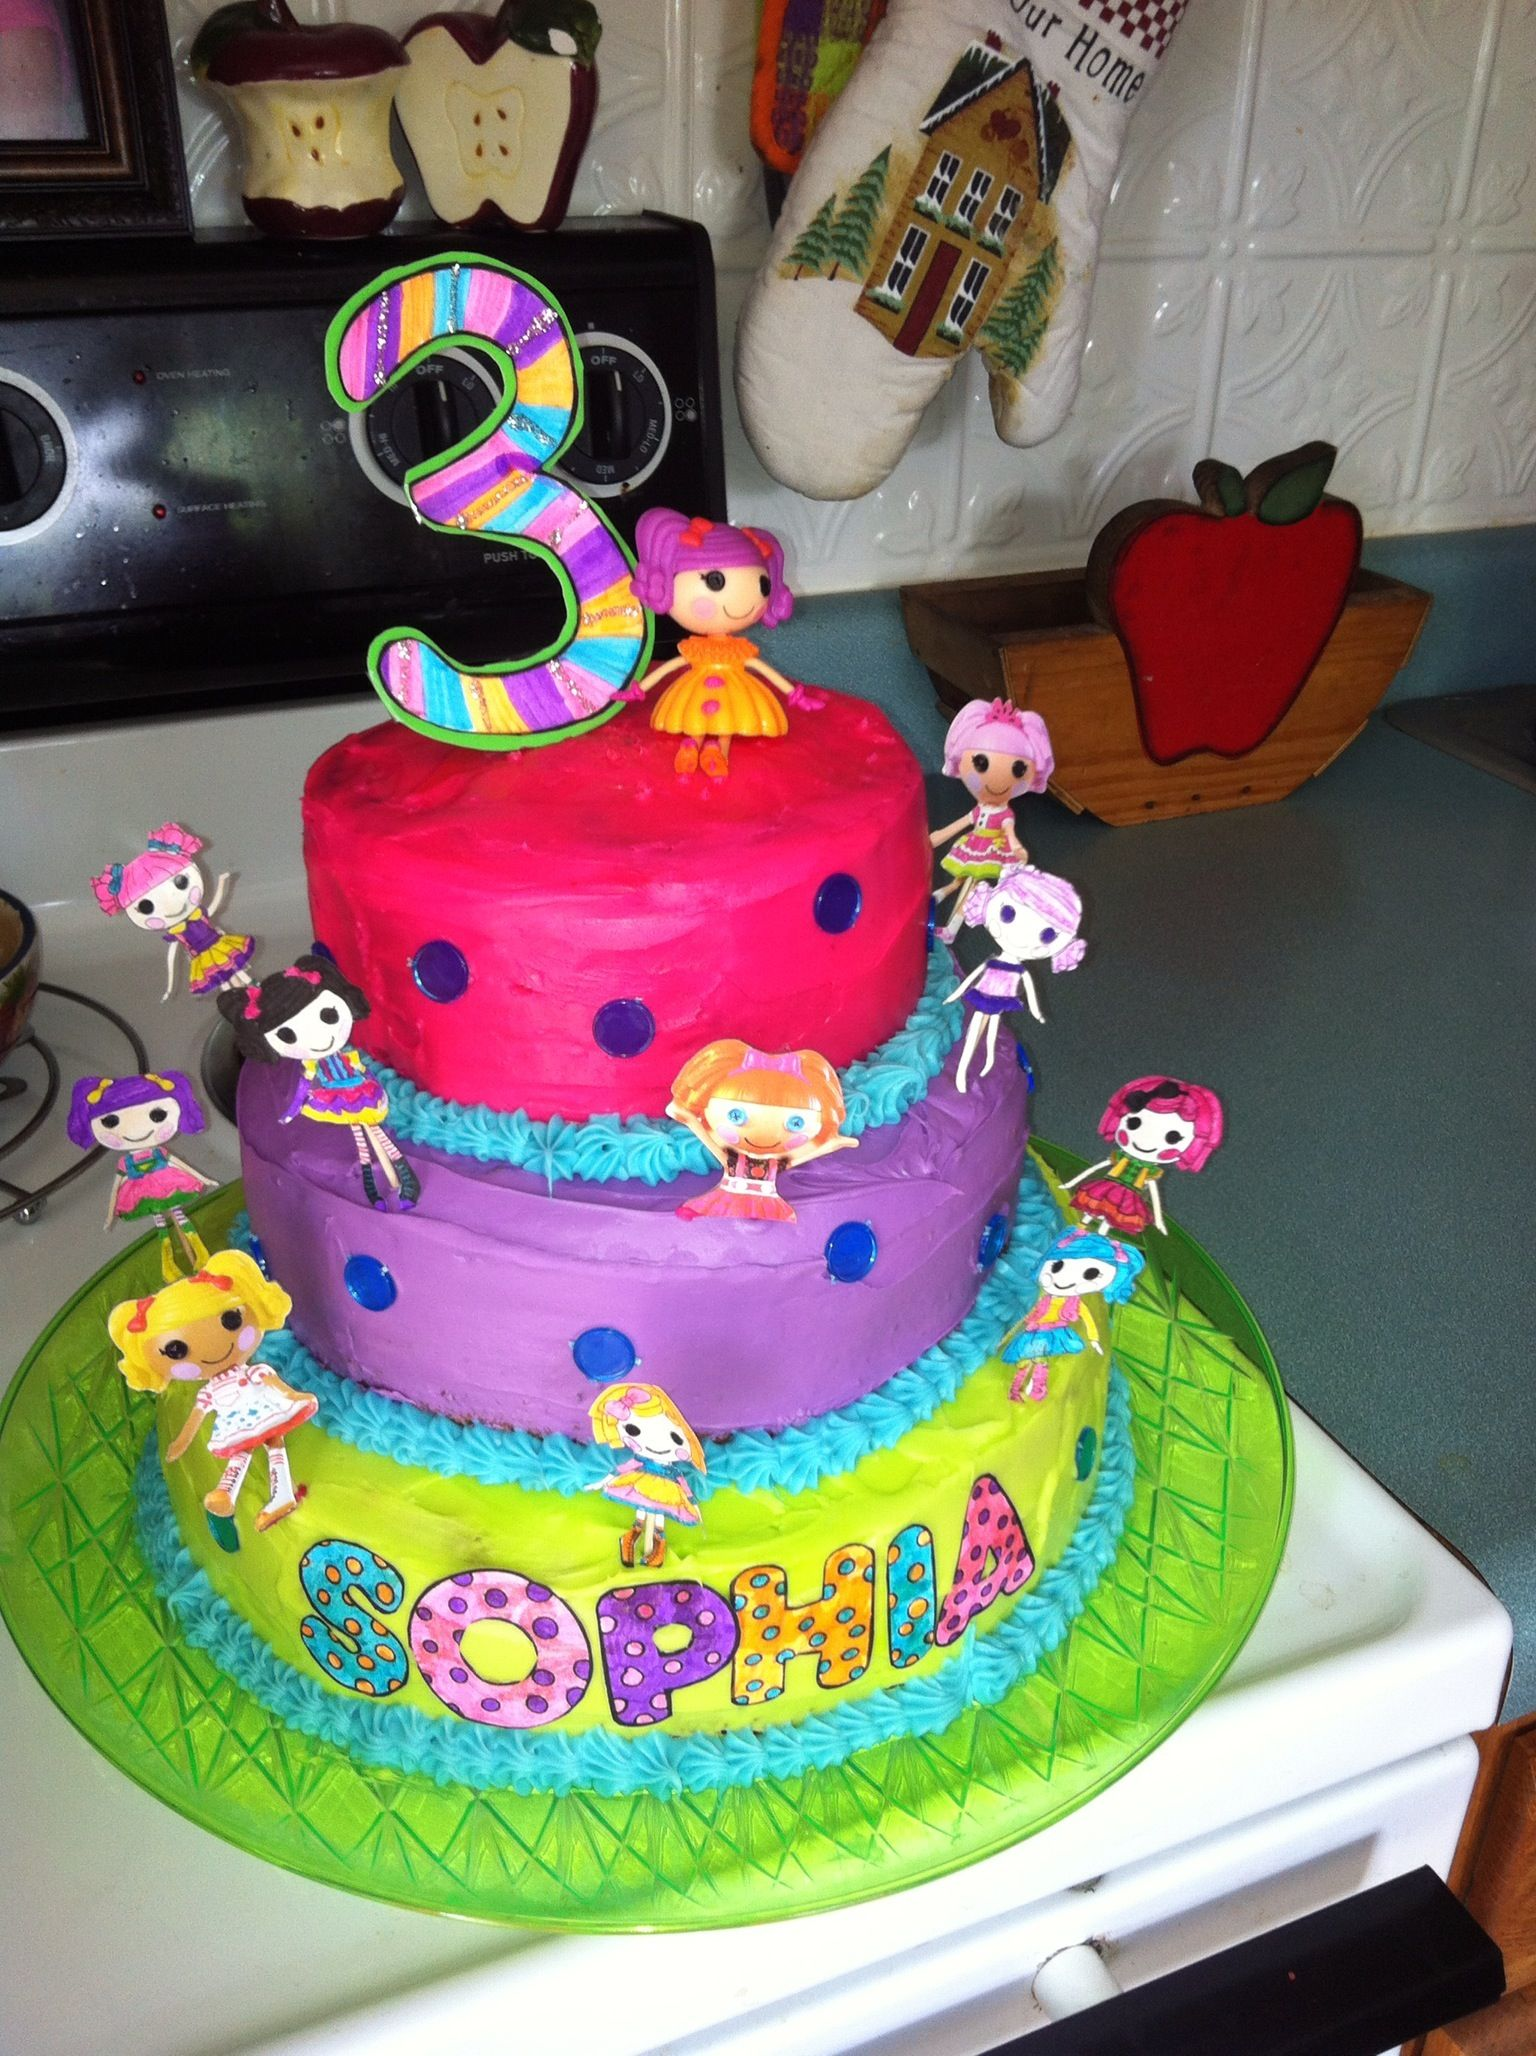 Lalaloopsy Cake I Made For My Little Girls 3rd Birthday 6th